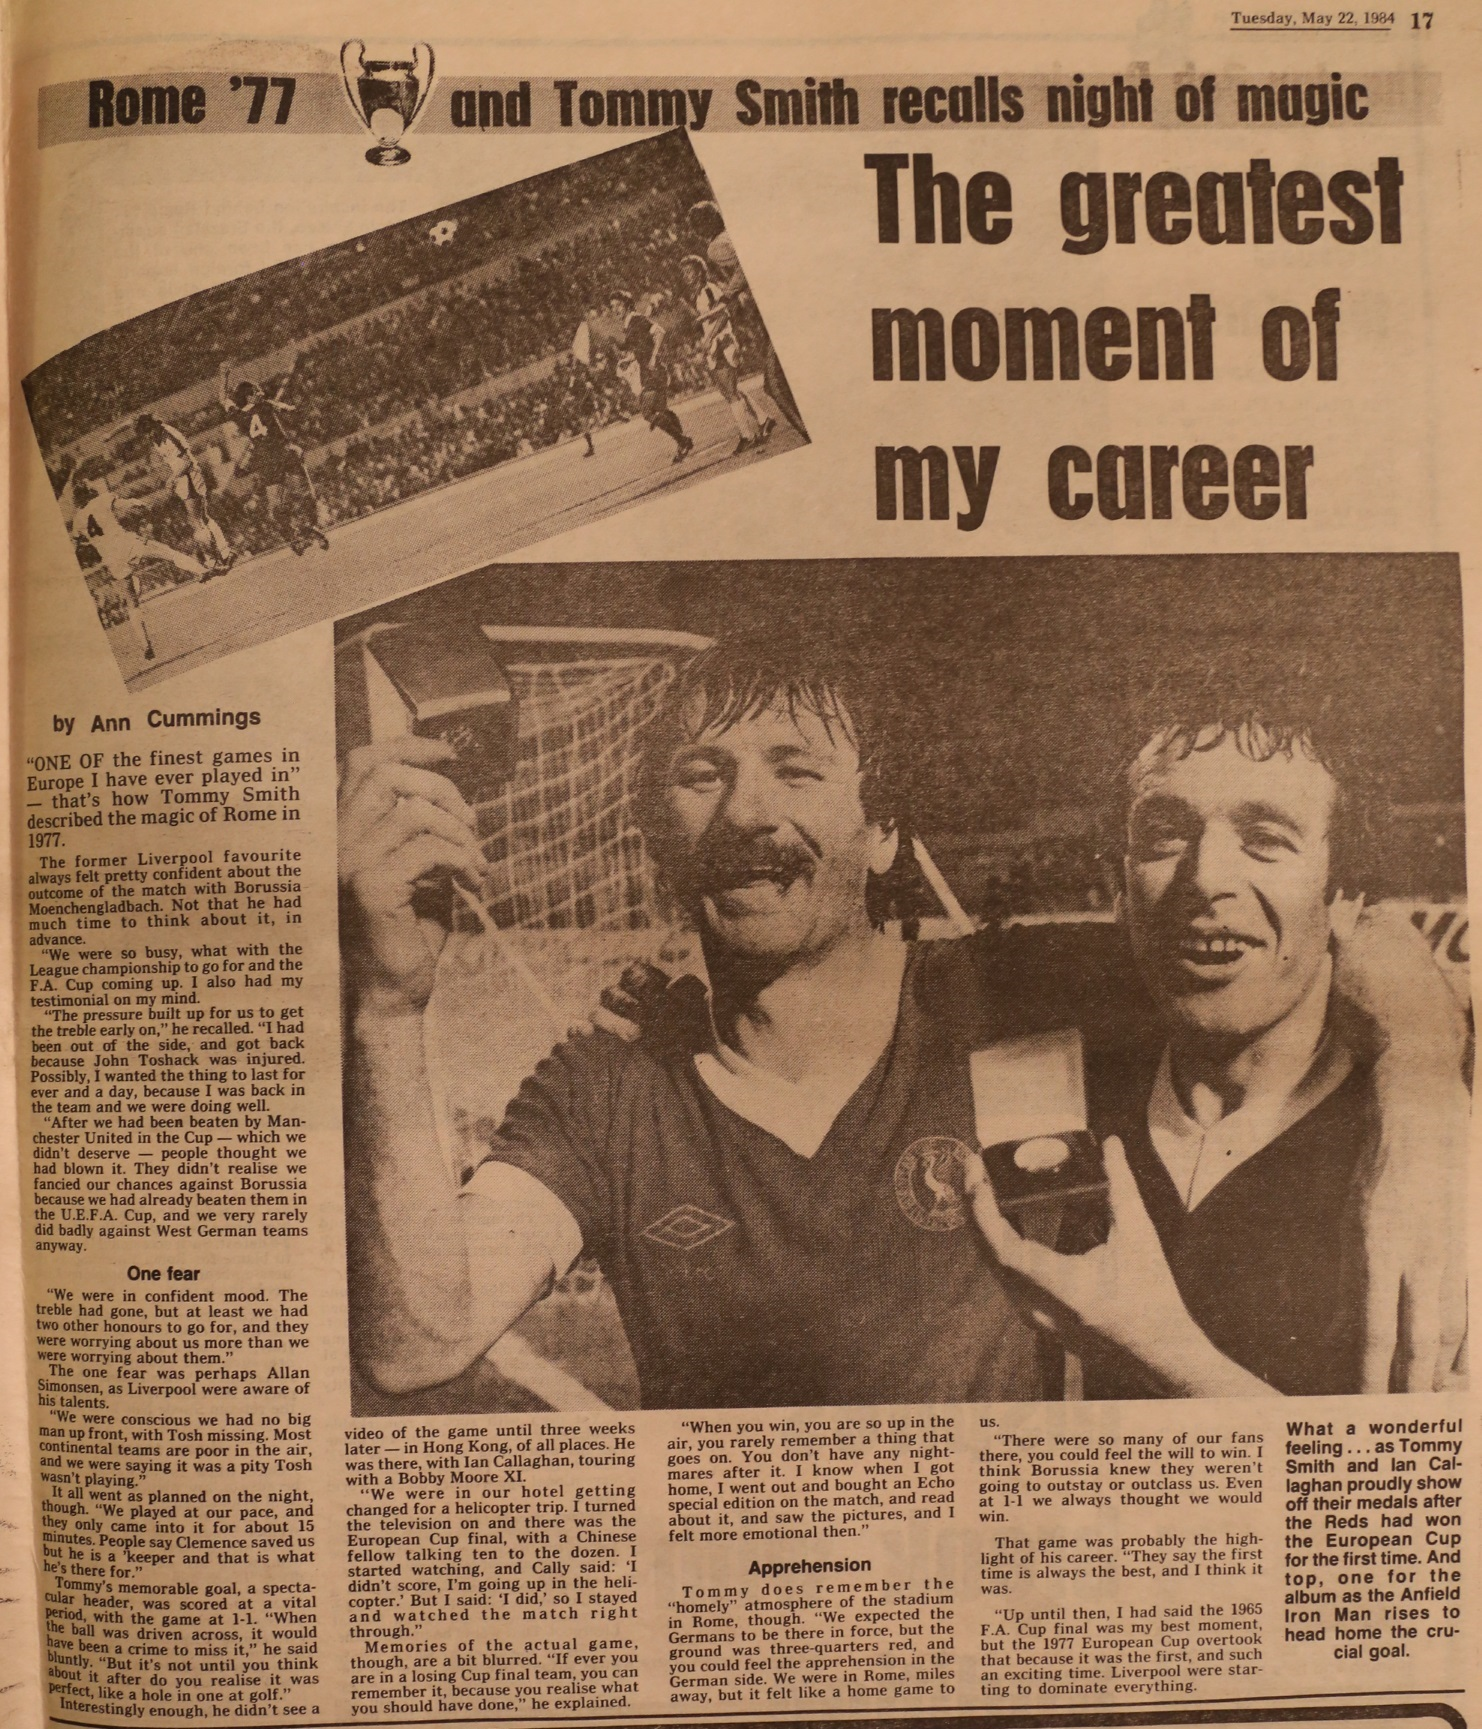 Smith on his greatest moment - 22 May 1984